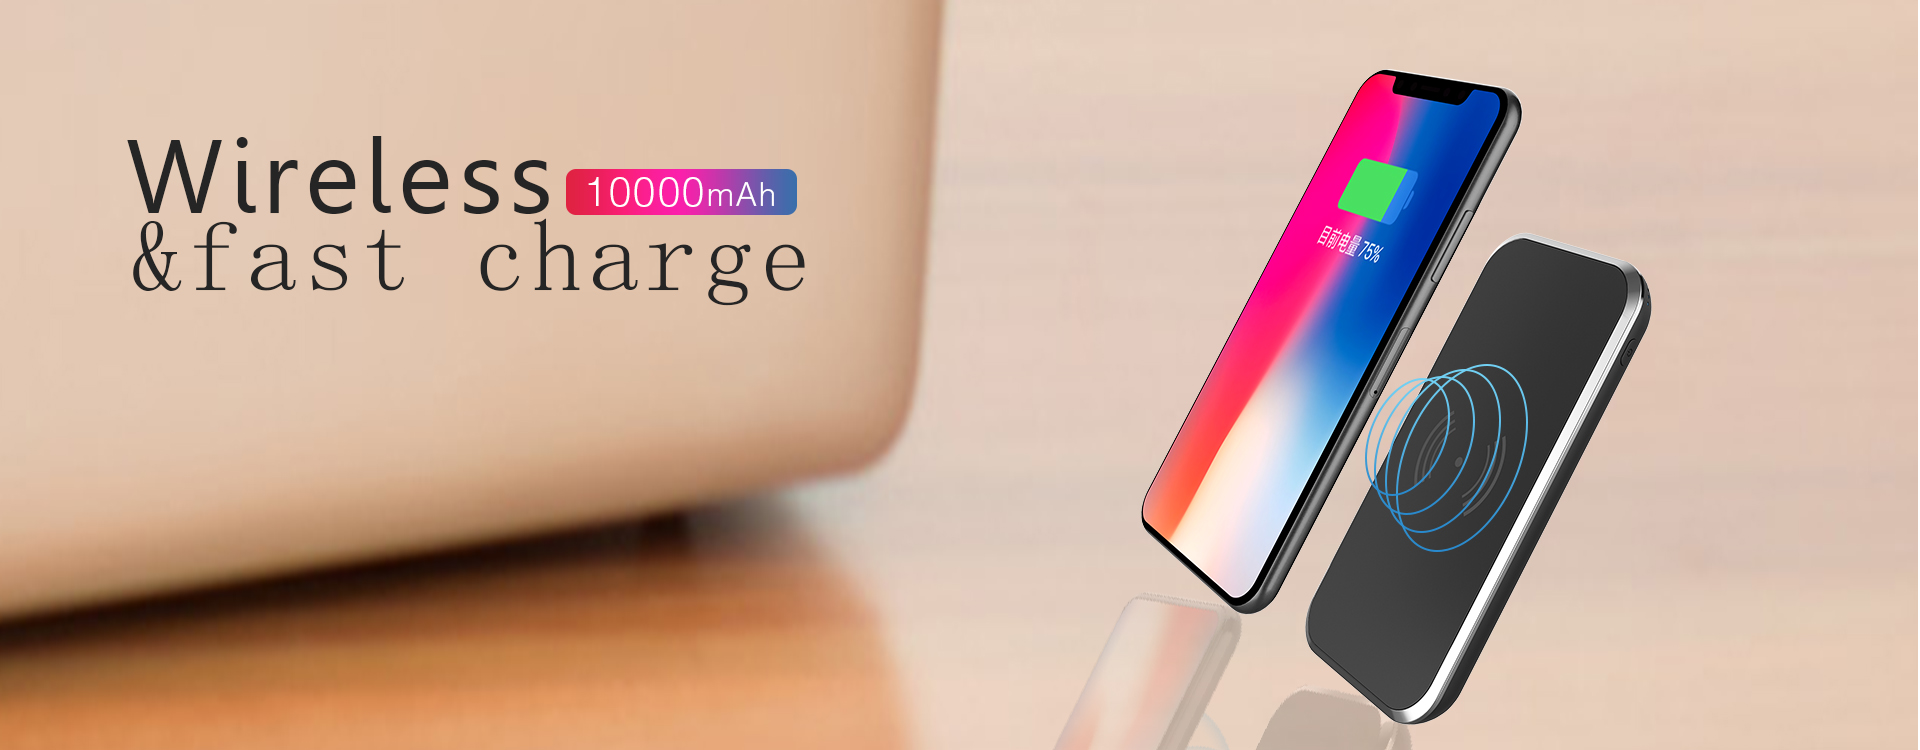 2019 New Arrivals Notebook QC 3.0 Wireless Charging Power Bank 10000mah